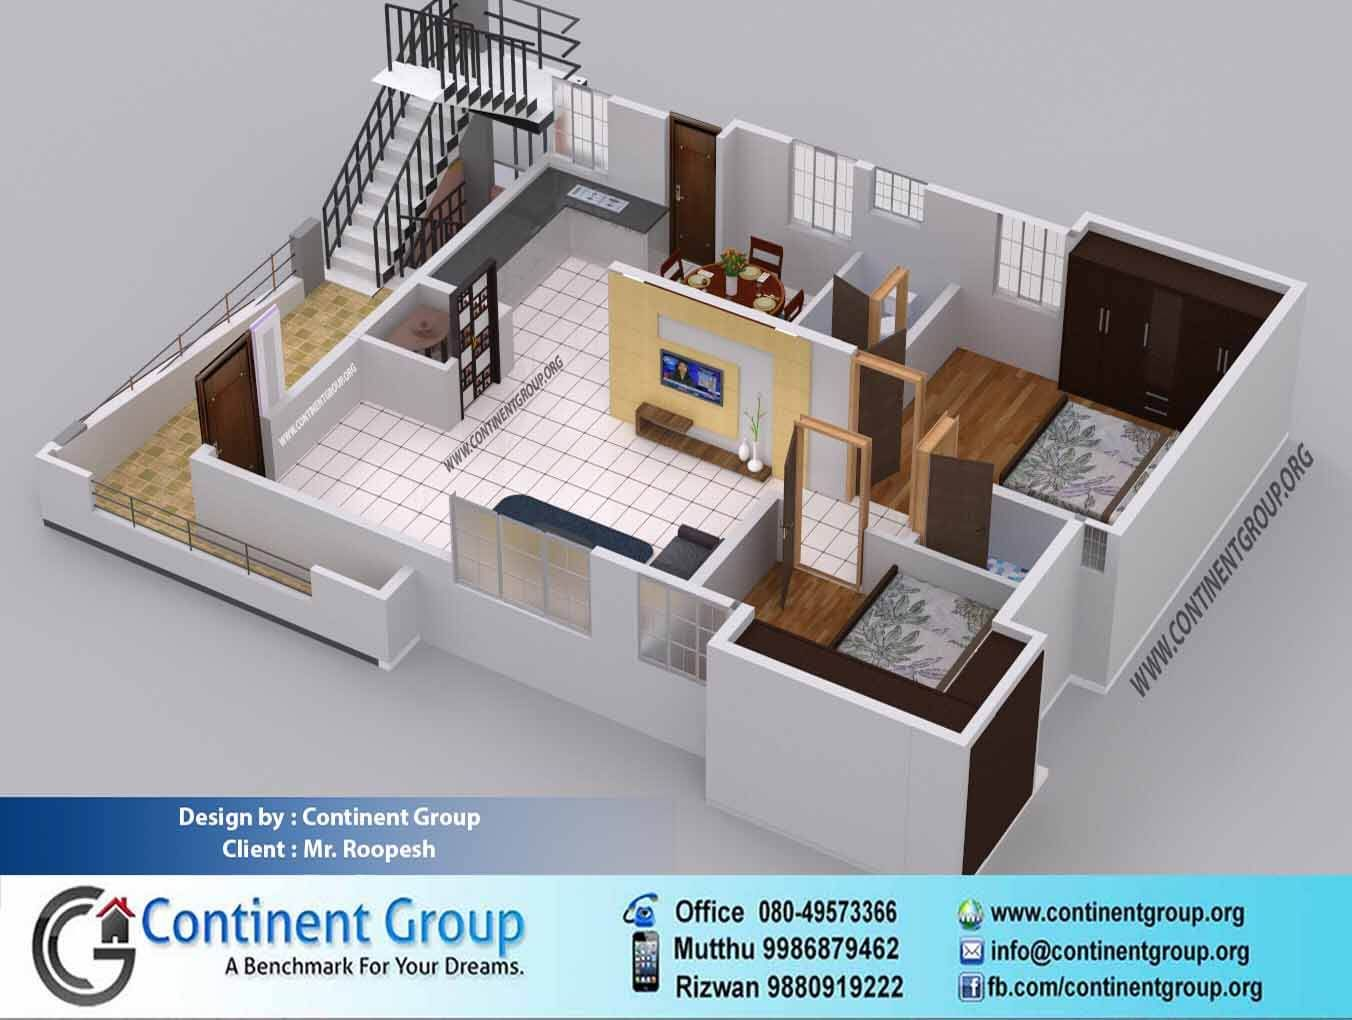 50 Two 2 Bedroom Apartment House Plans Small House Plans Small House Design Apartment Layout